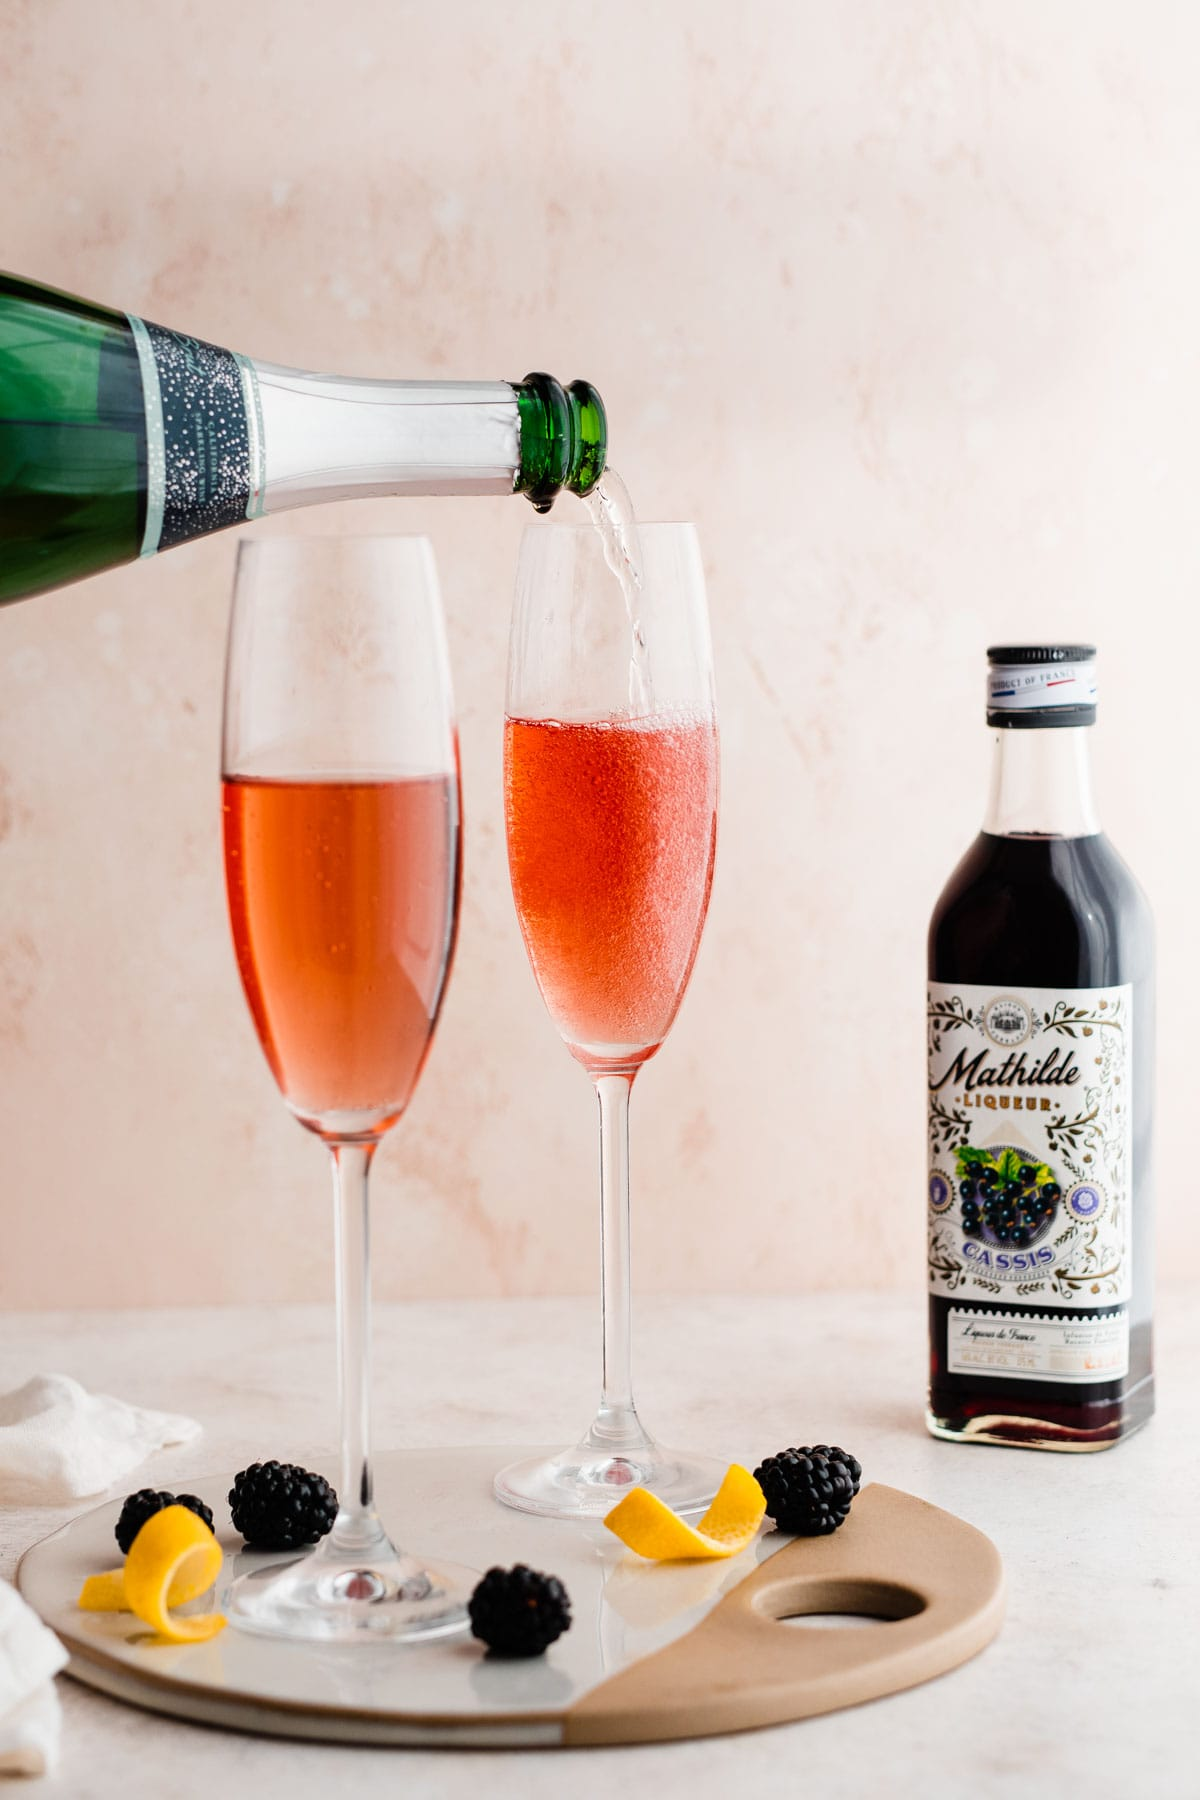 Kir Royale - A classic French cocktail made with champagne and currant liqueur